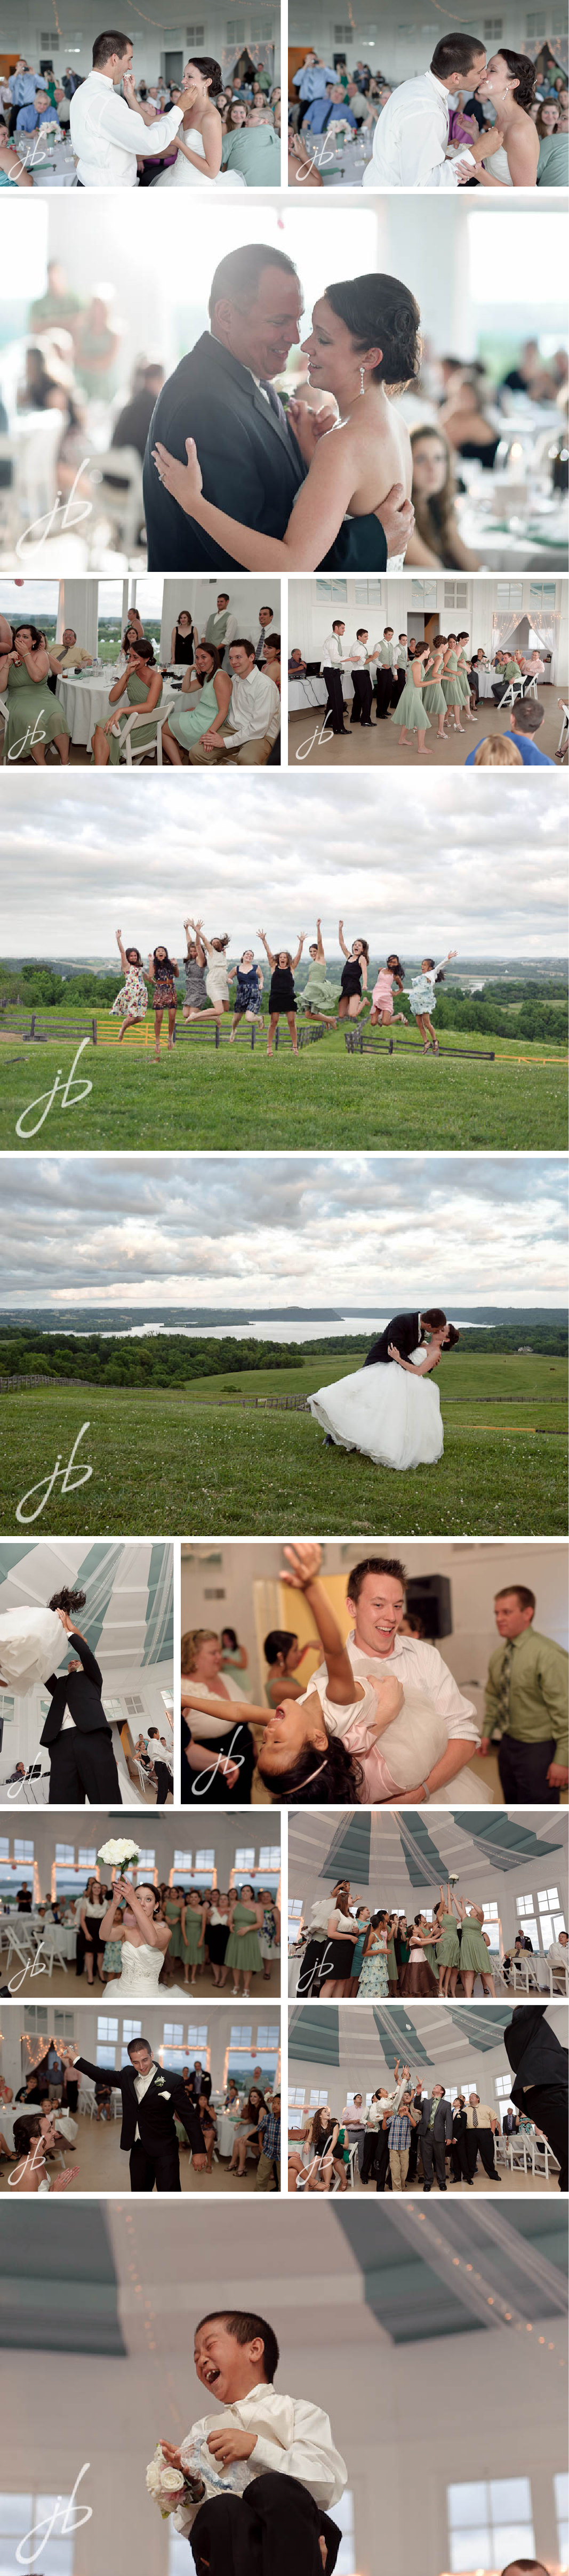 Lauxmont Farms wedding photography by Jeremy Bischoff Photography